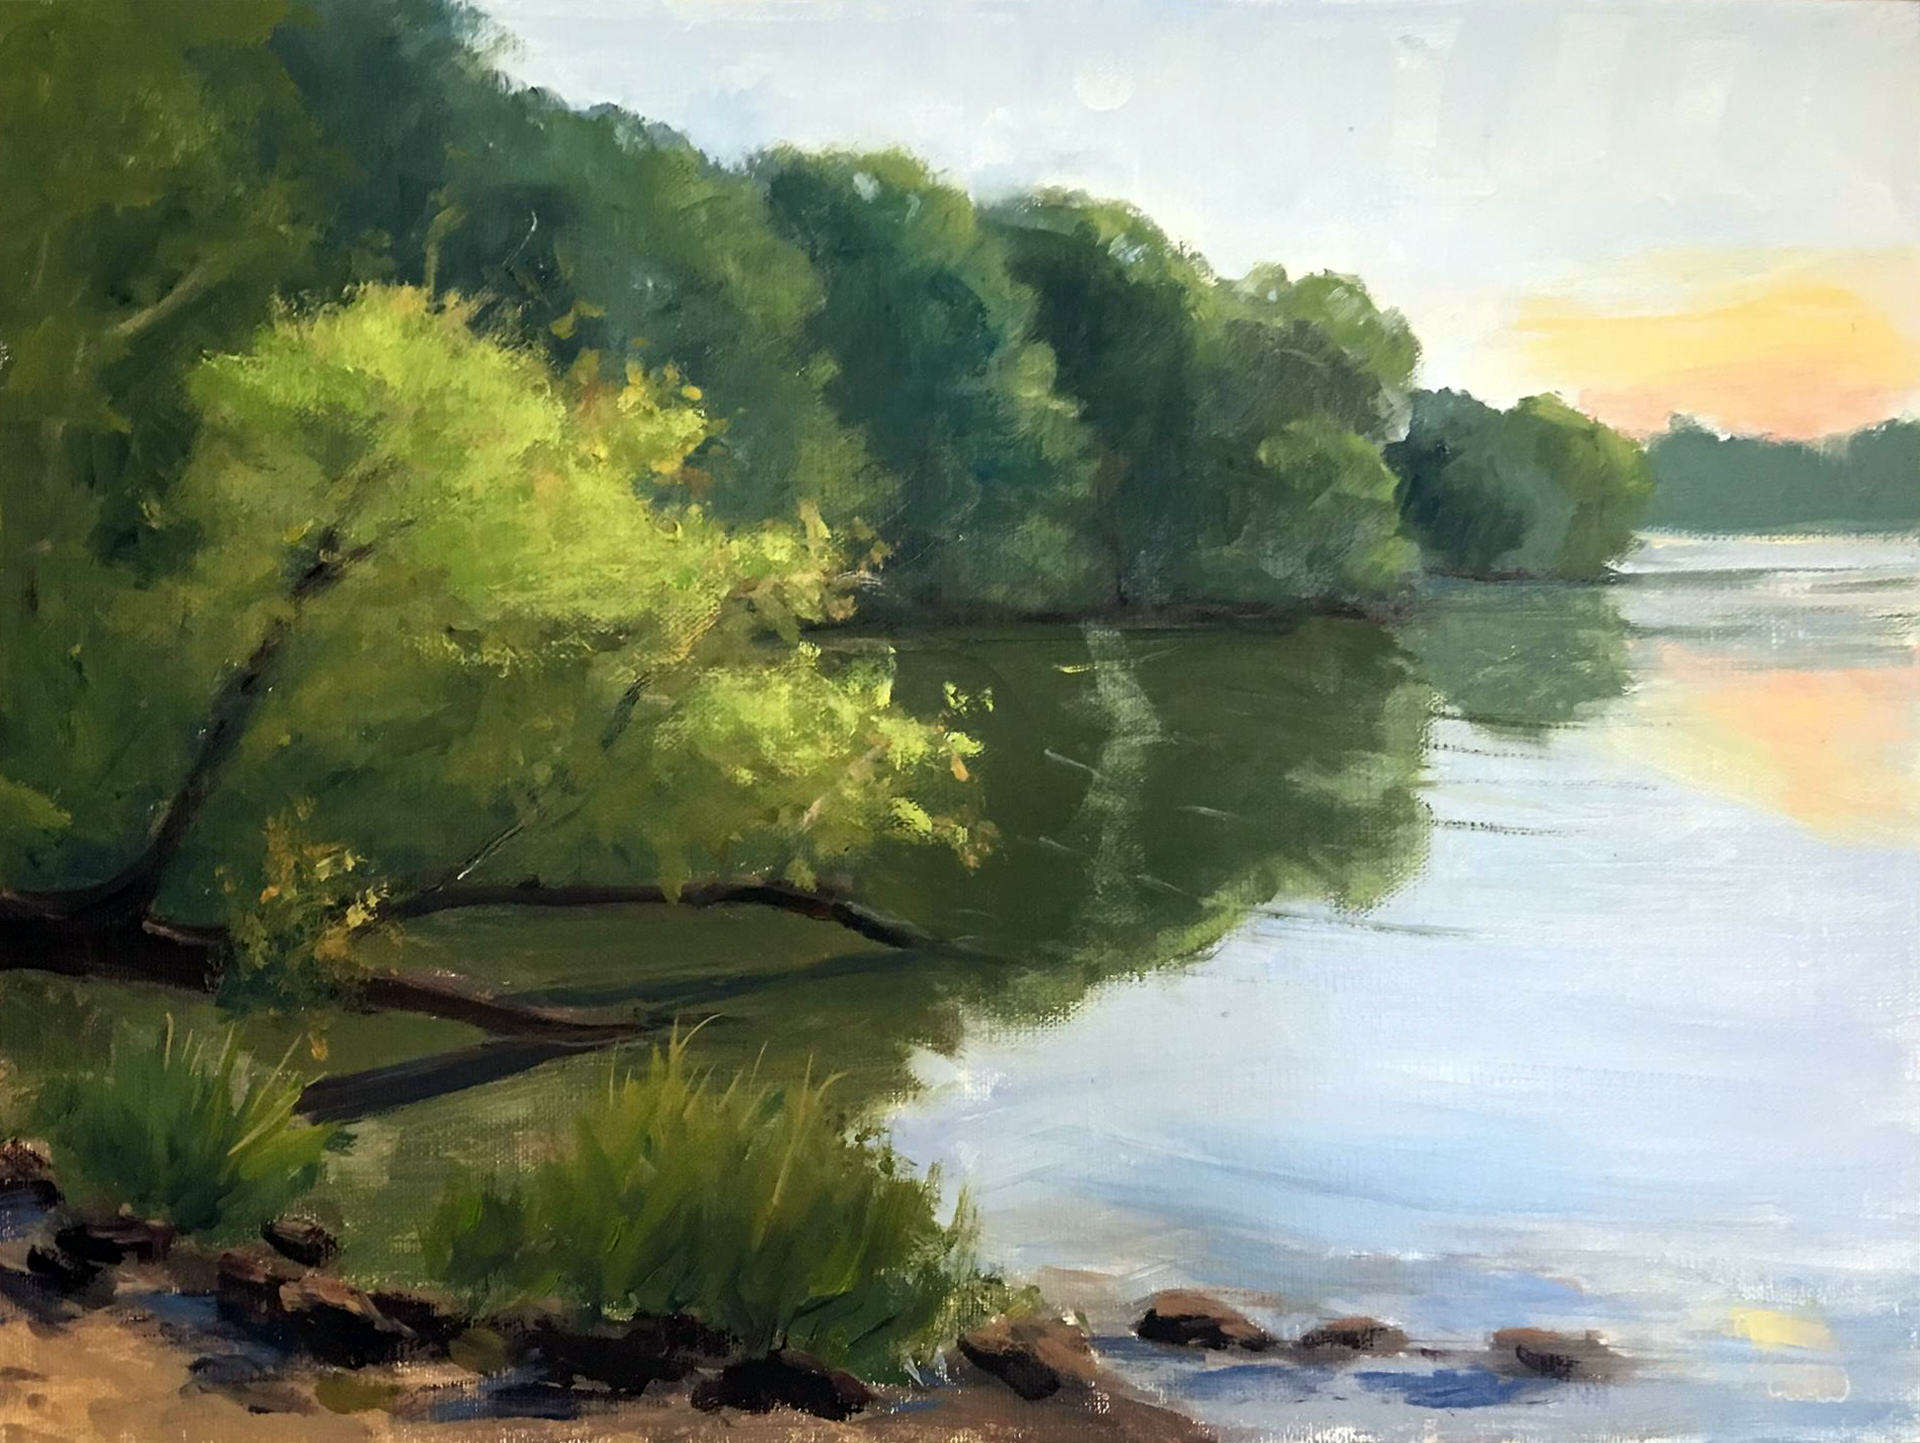 Jody Crow | WINGFOOT LAKE | oil on linen